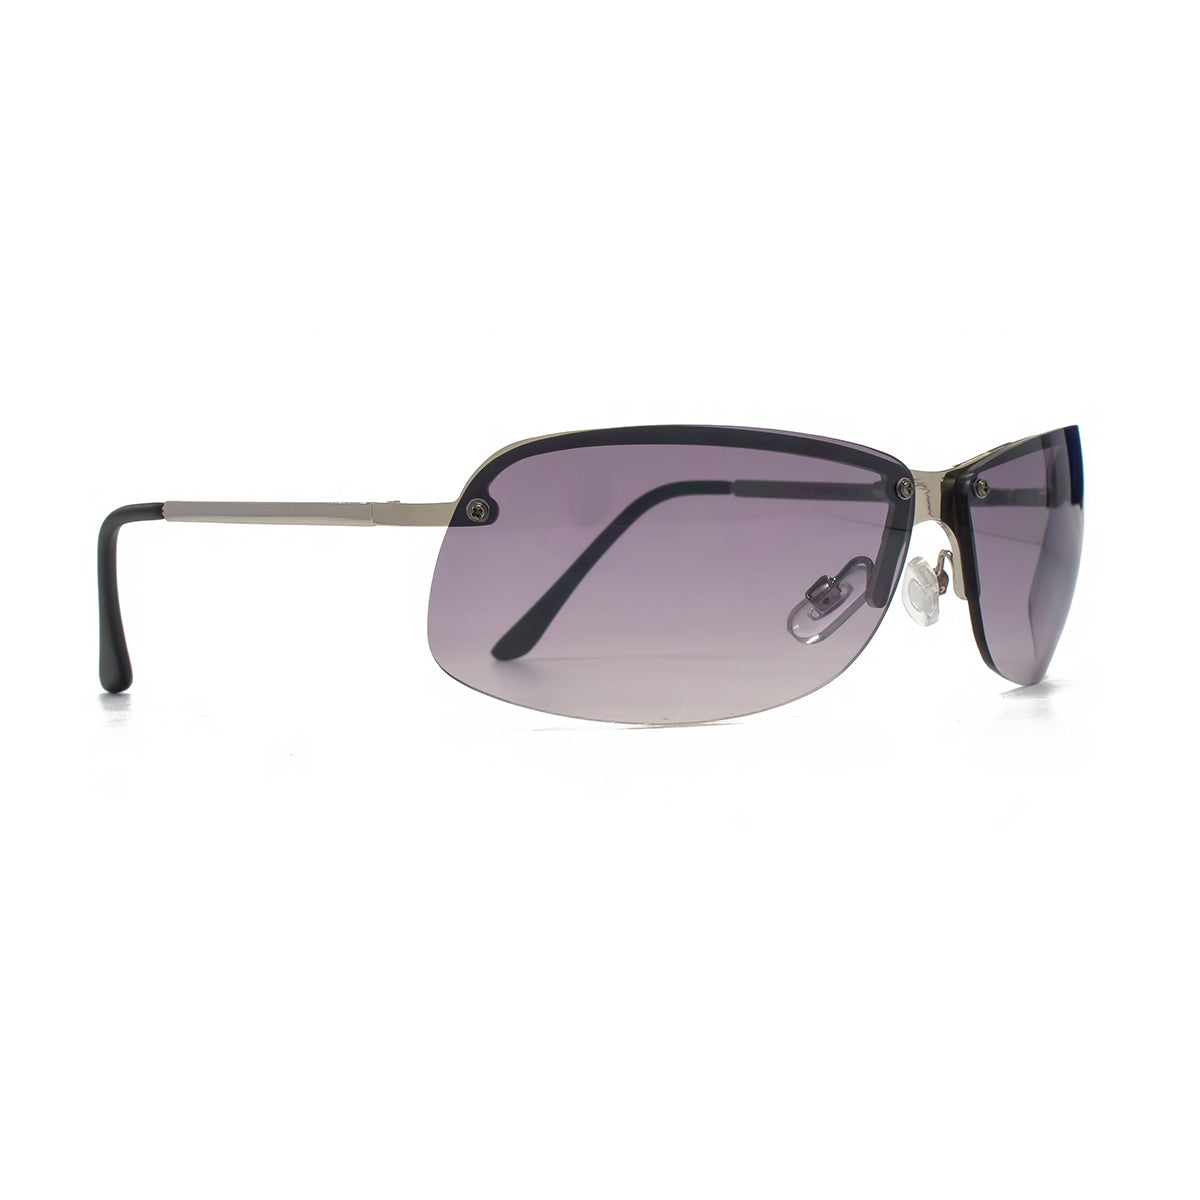 French Connection FC Men's FCU008 Sunglasses